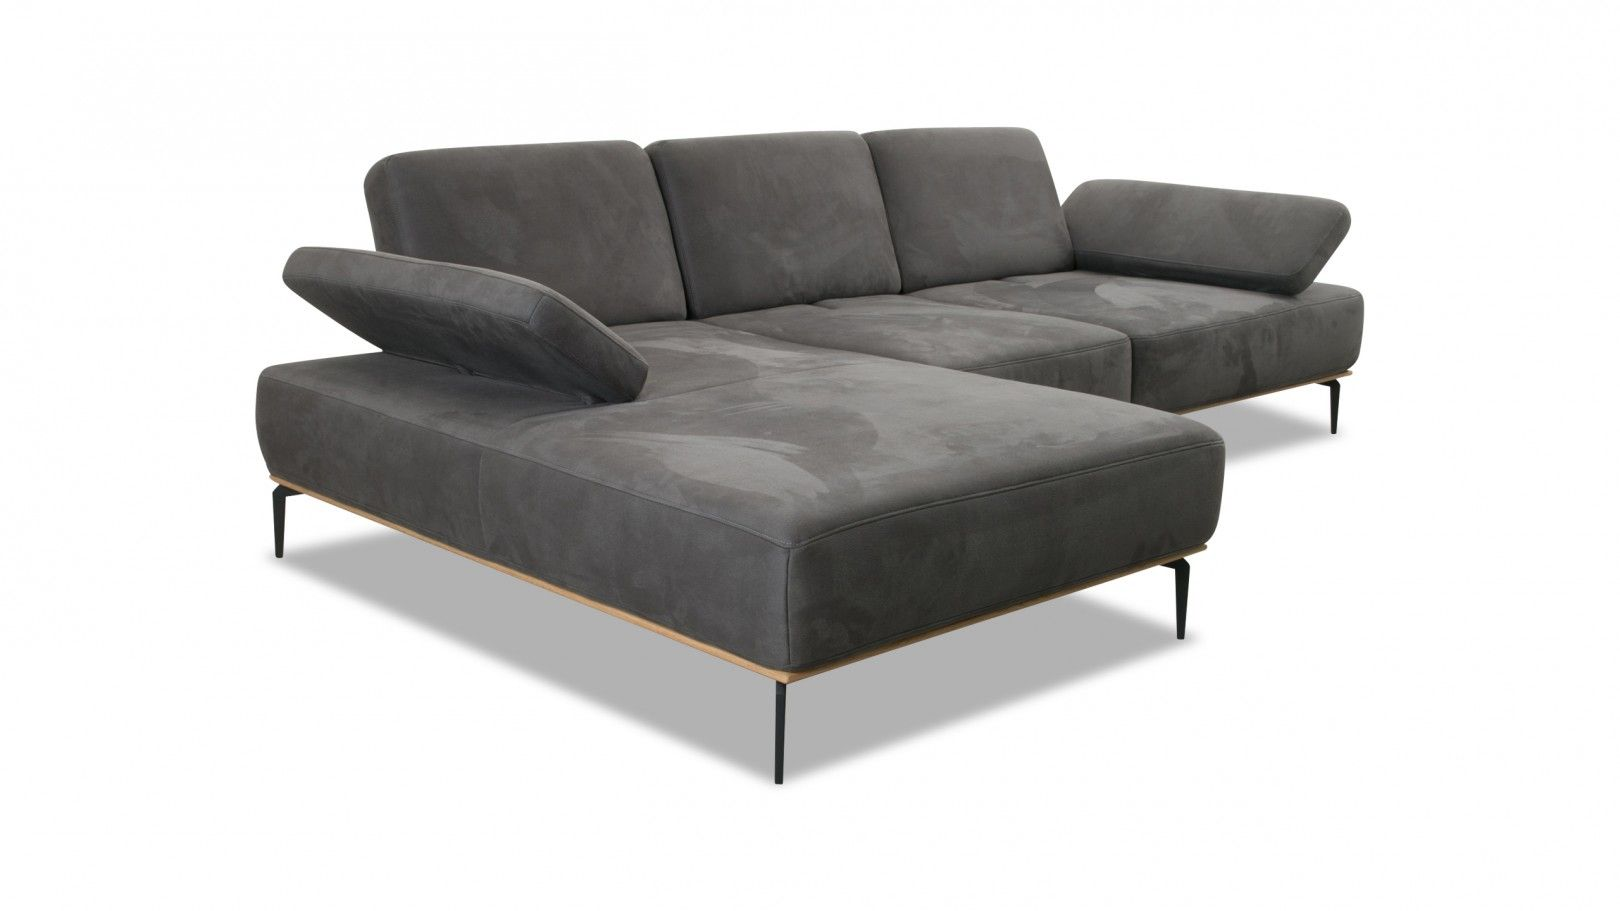 Schillig Taoo 350 Sitzdesign Outlet-ideen | Sofa Outlet, Neue Möbel, Outlet Store